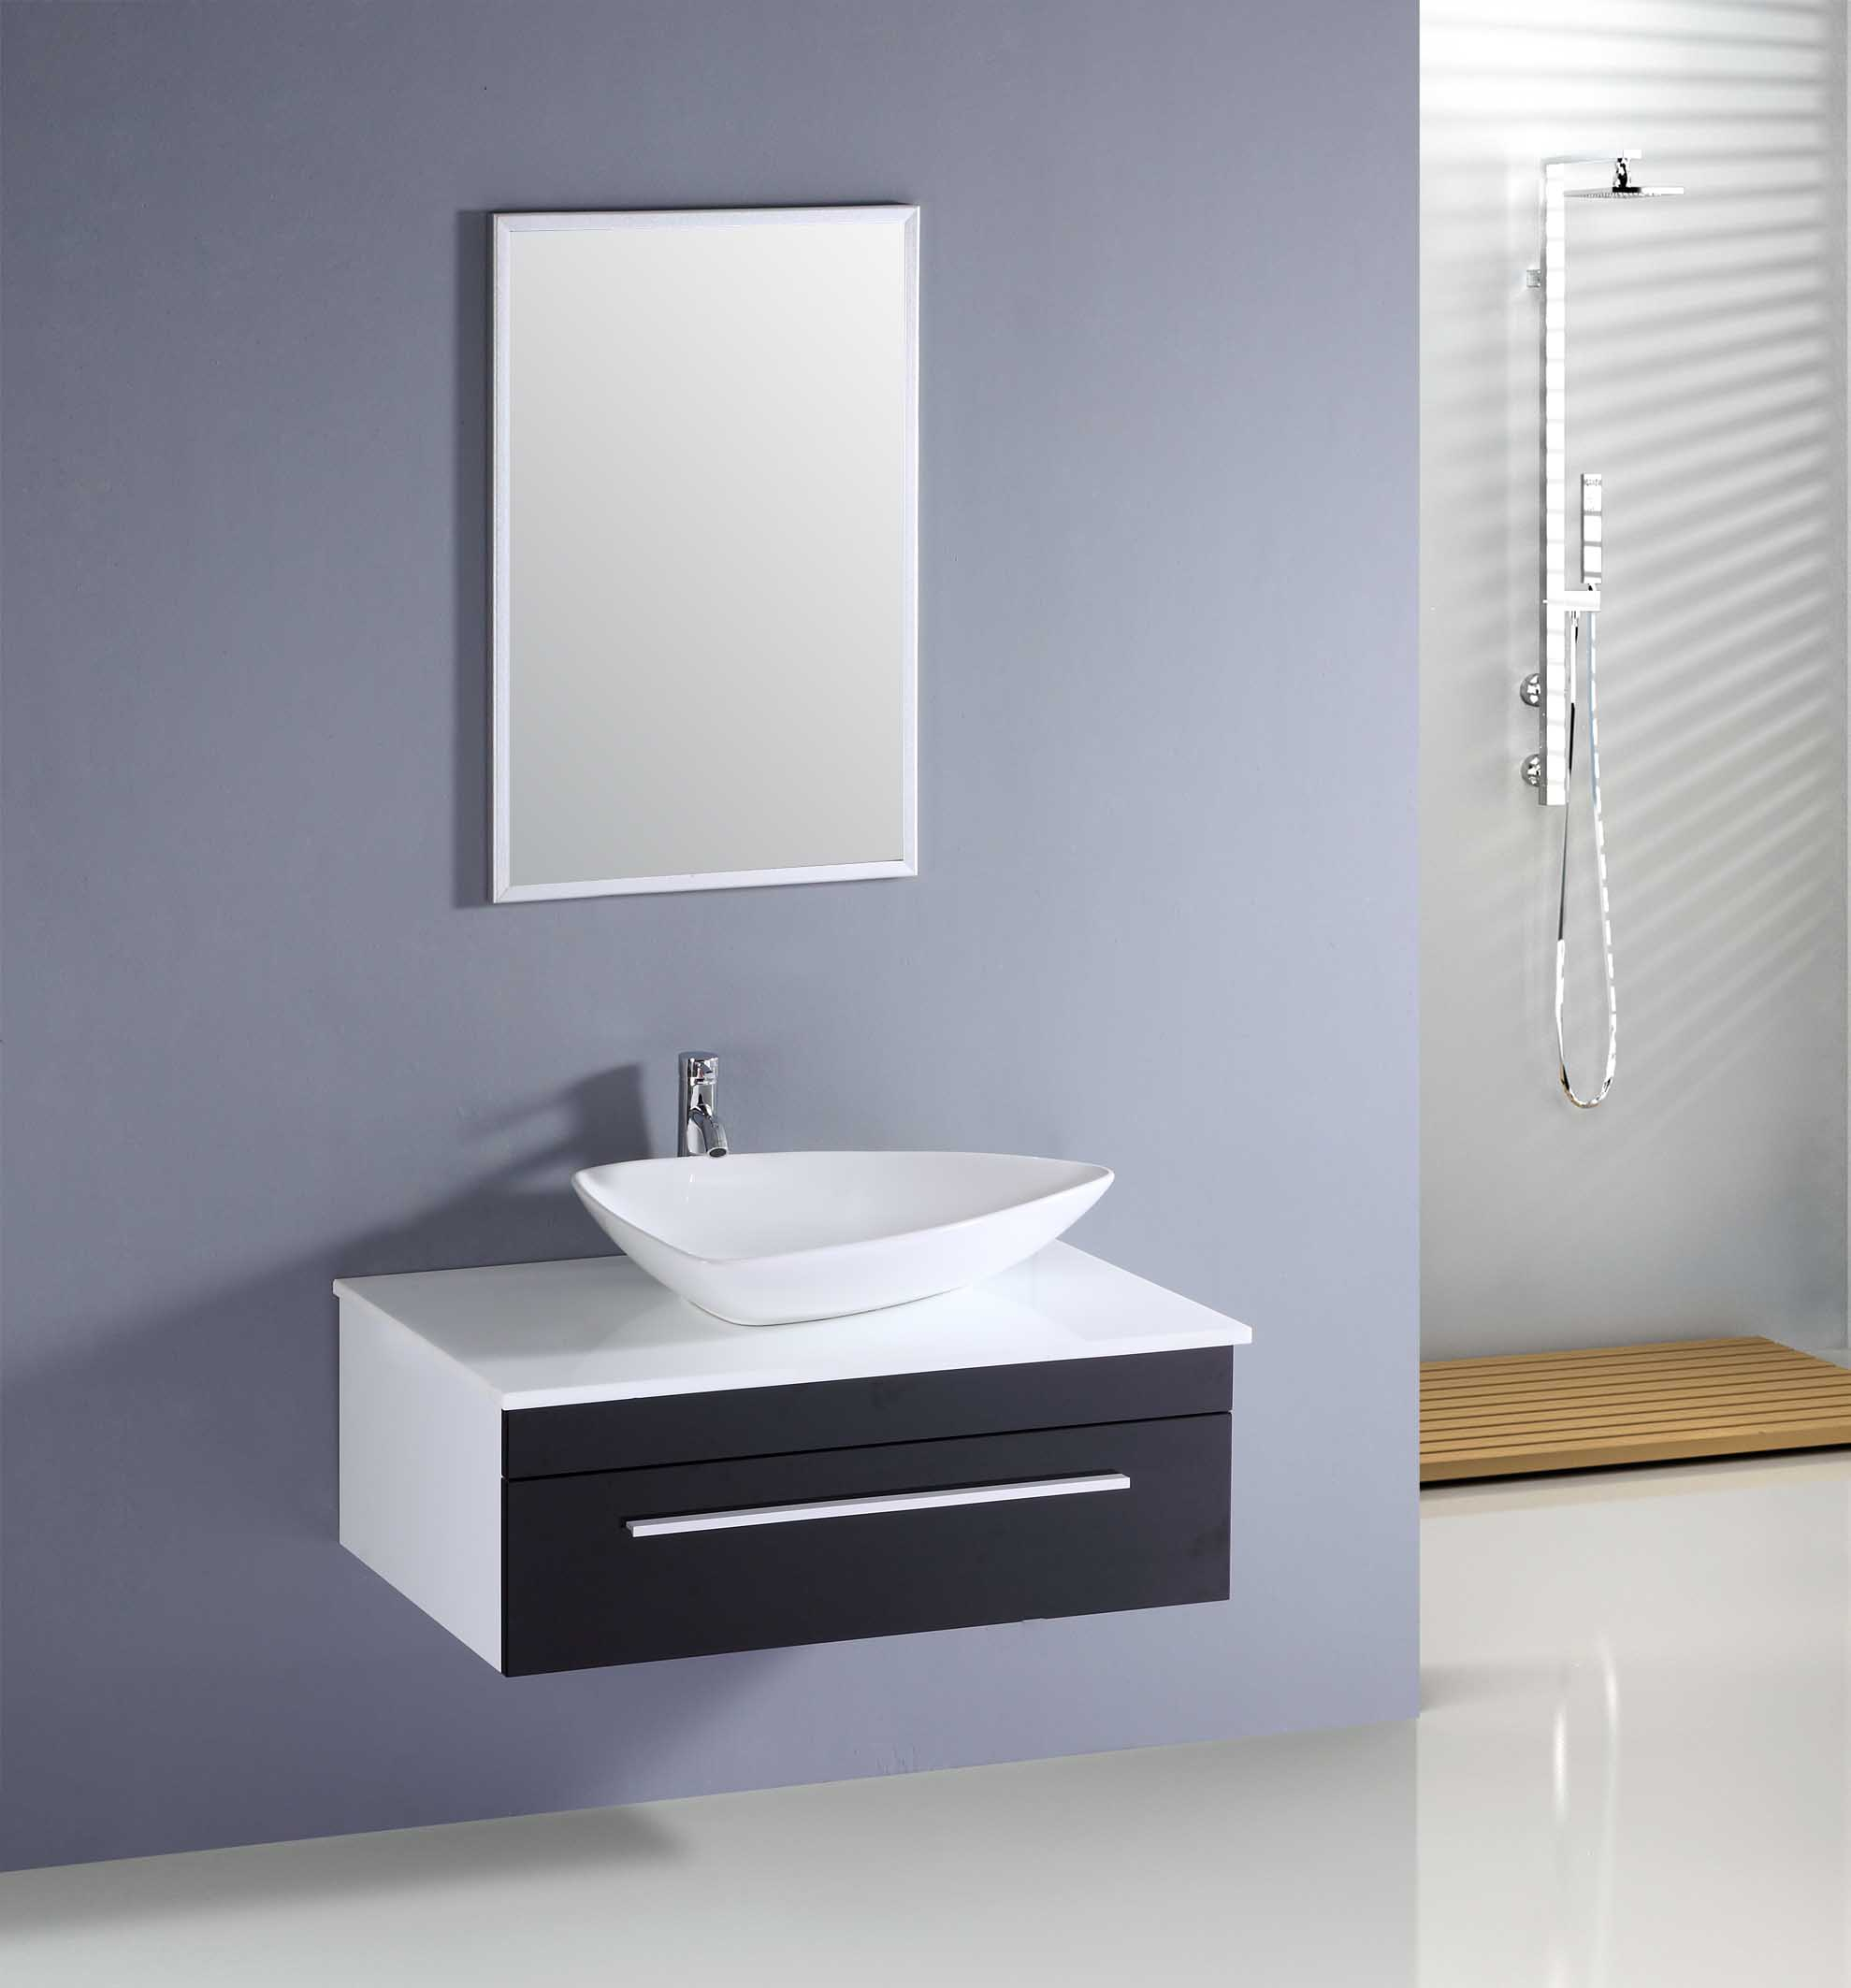 undermount sink ultra scenic vanity k category floating affordable and black sinks faucet kohler single of medicine bath full lowes faucets good size decor with vanities contemporary looking mirrored for lighting small cabinets likable bathroom robern post damask design modern